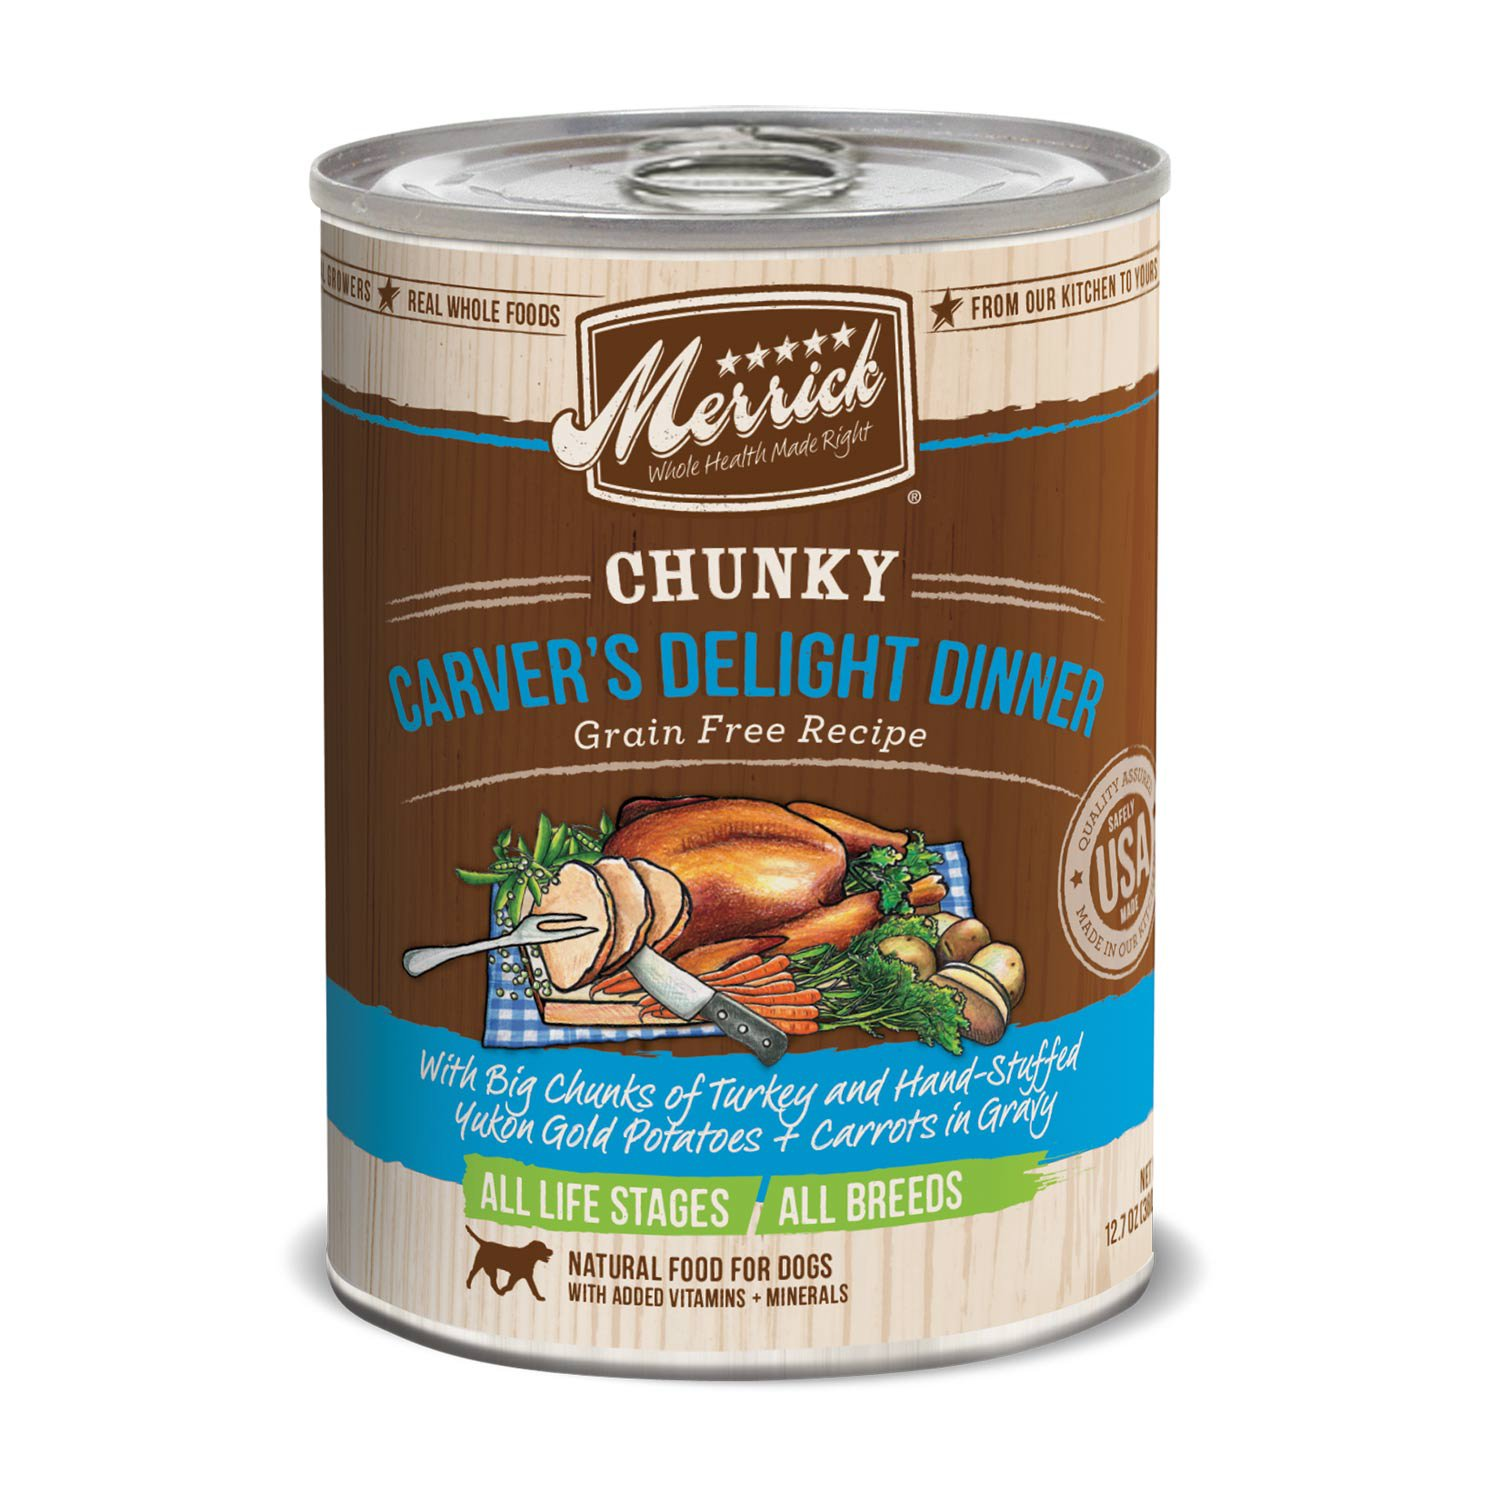 Merrick Chunky Carvers Delight Dinner 12.8oz 12 Count Case